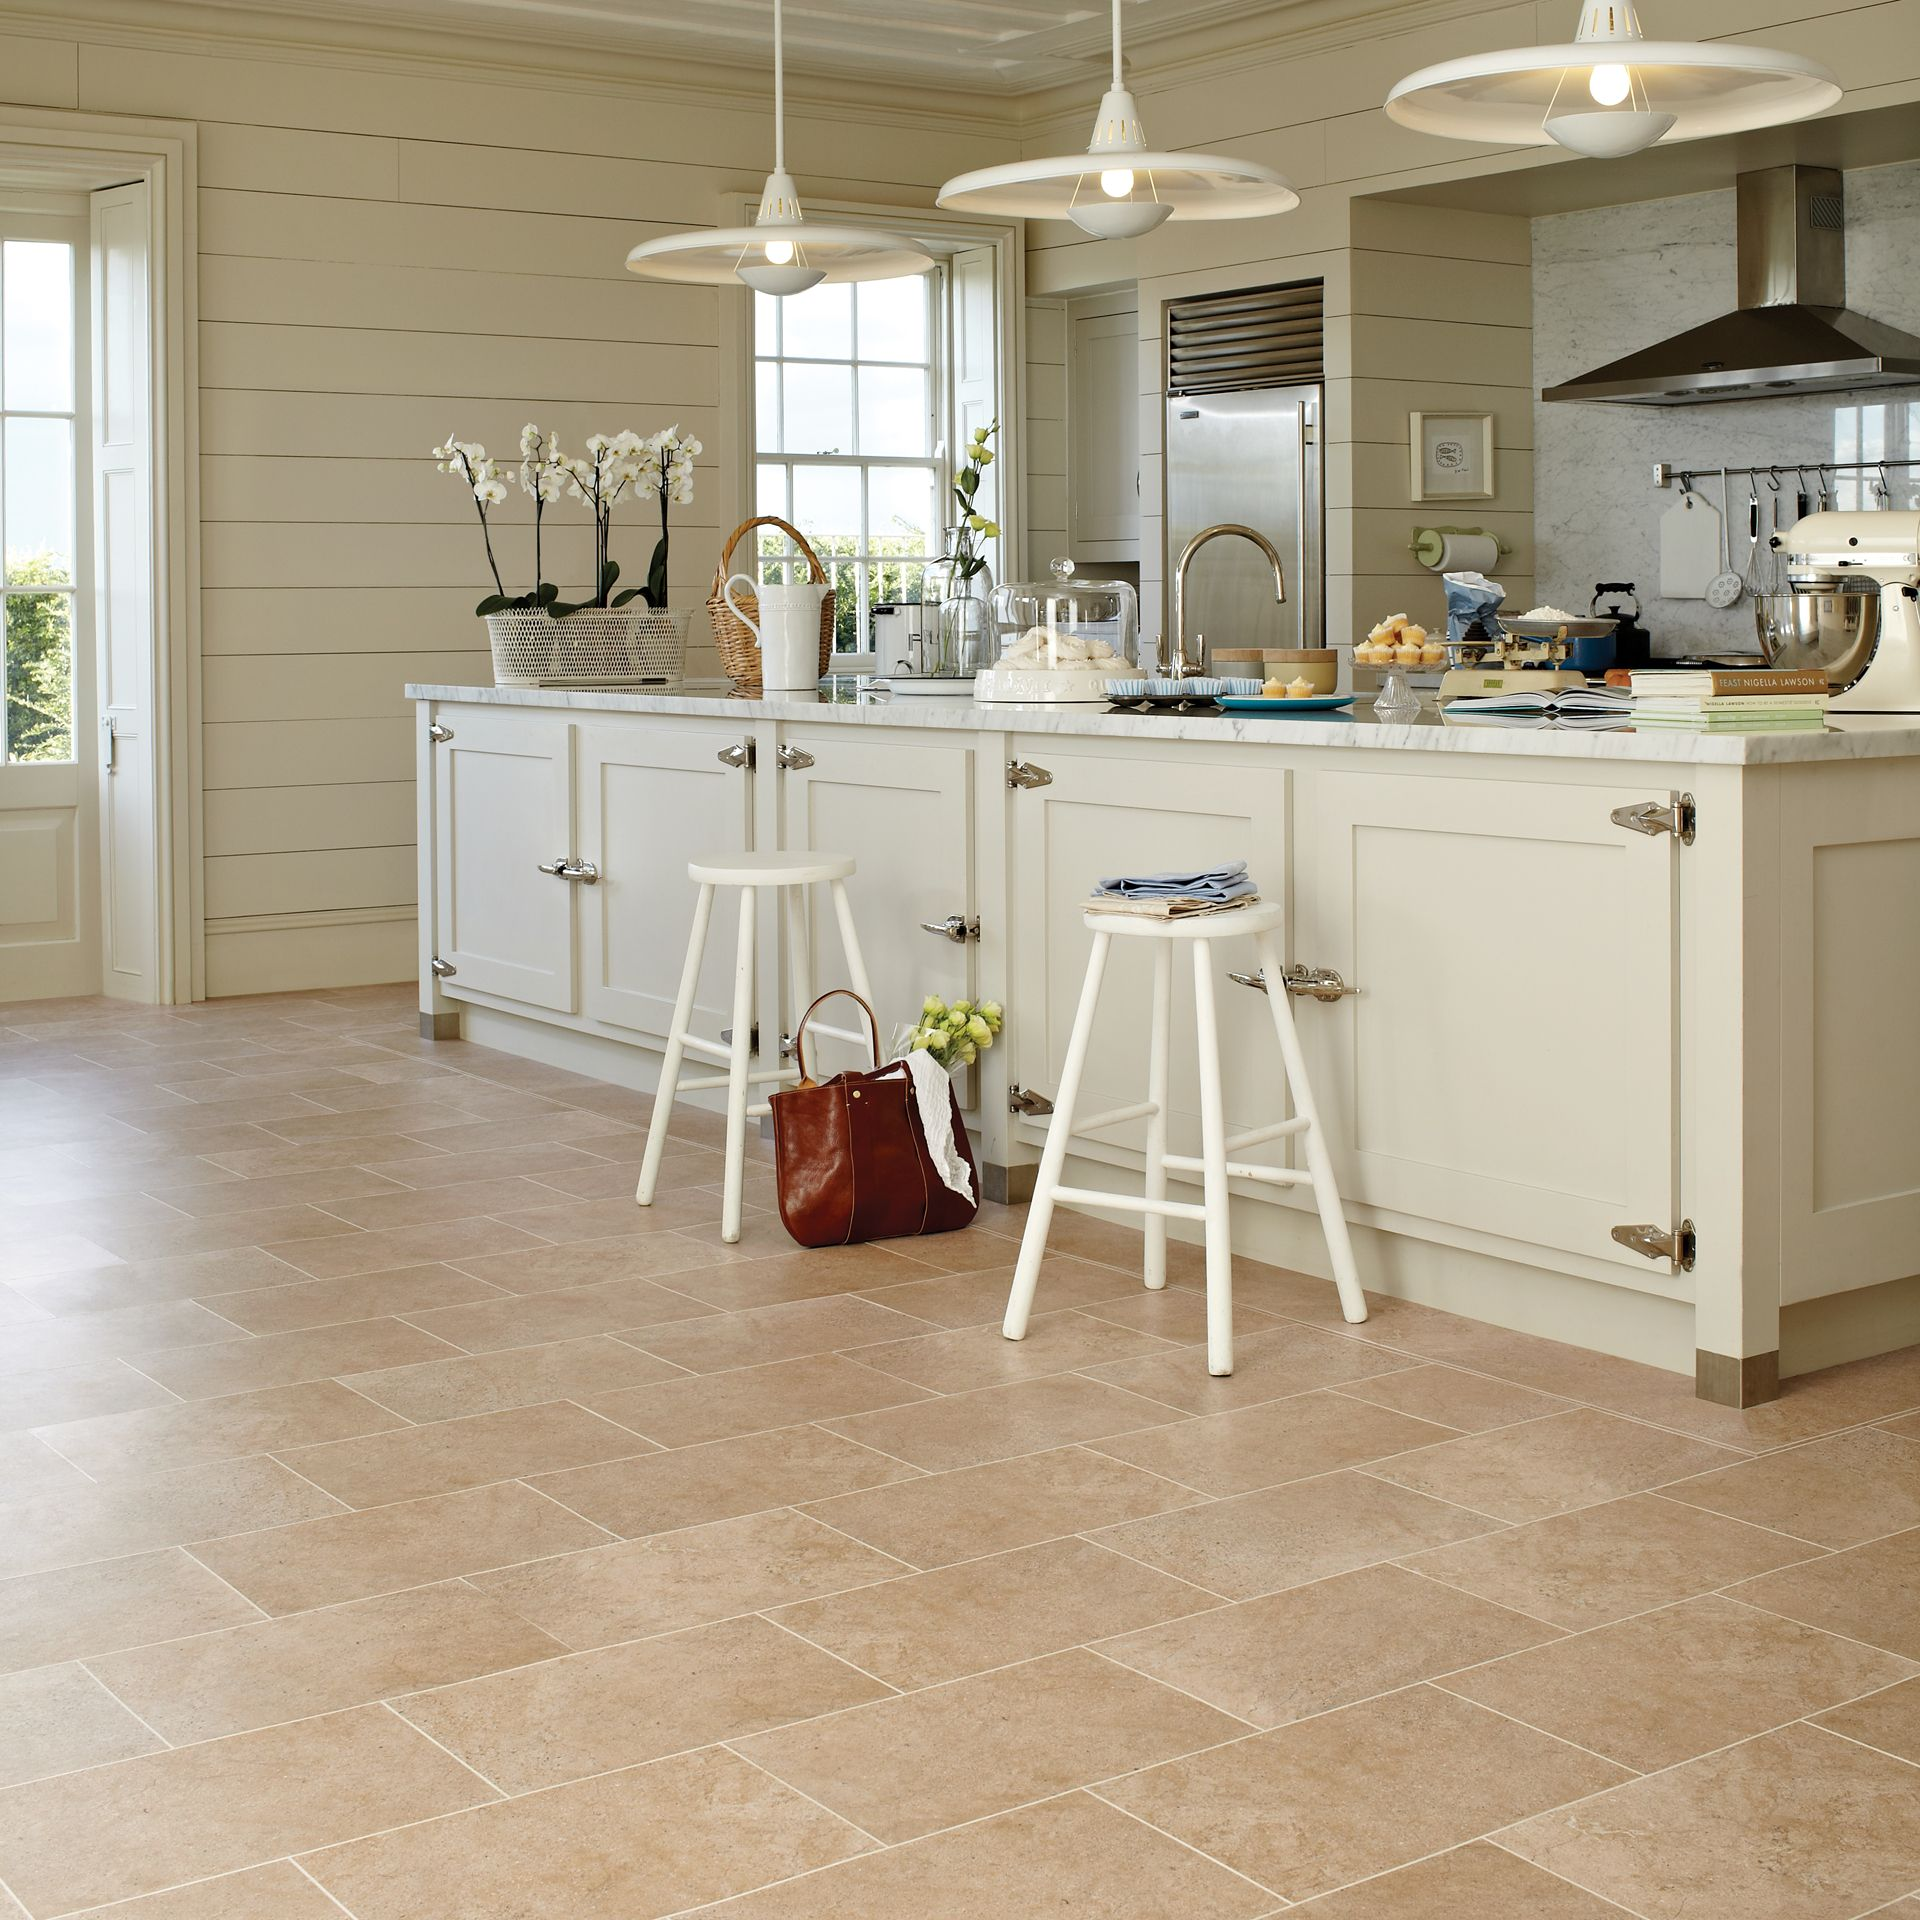 Natural Stone Kitchen Flooring Natural Stone Effect Vinyl Floor Tiles Kitchen Pinterest